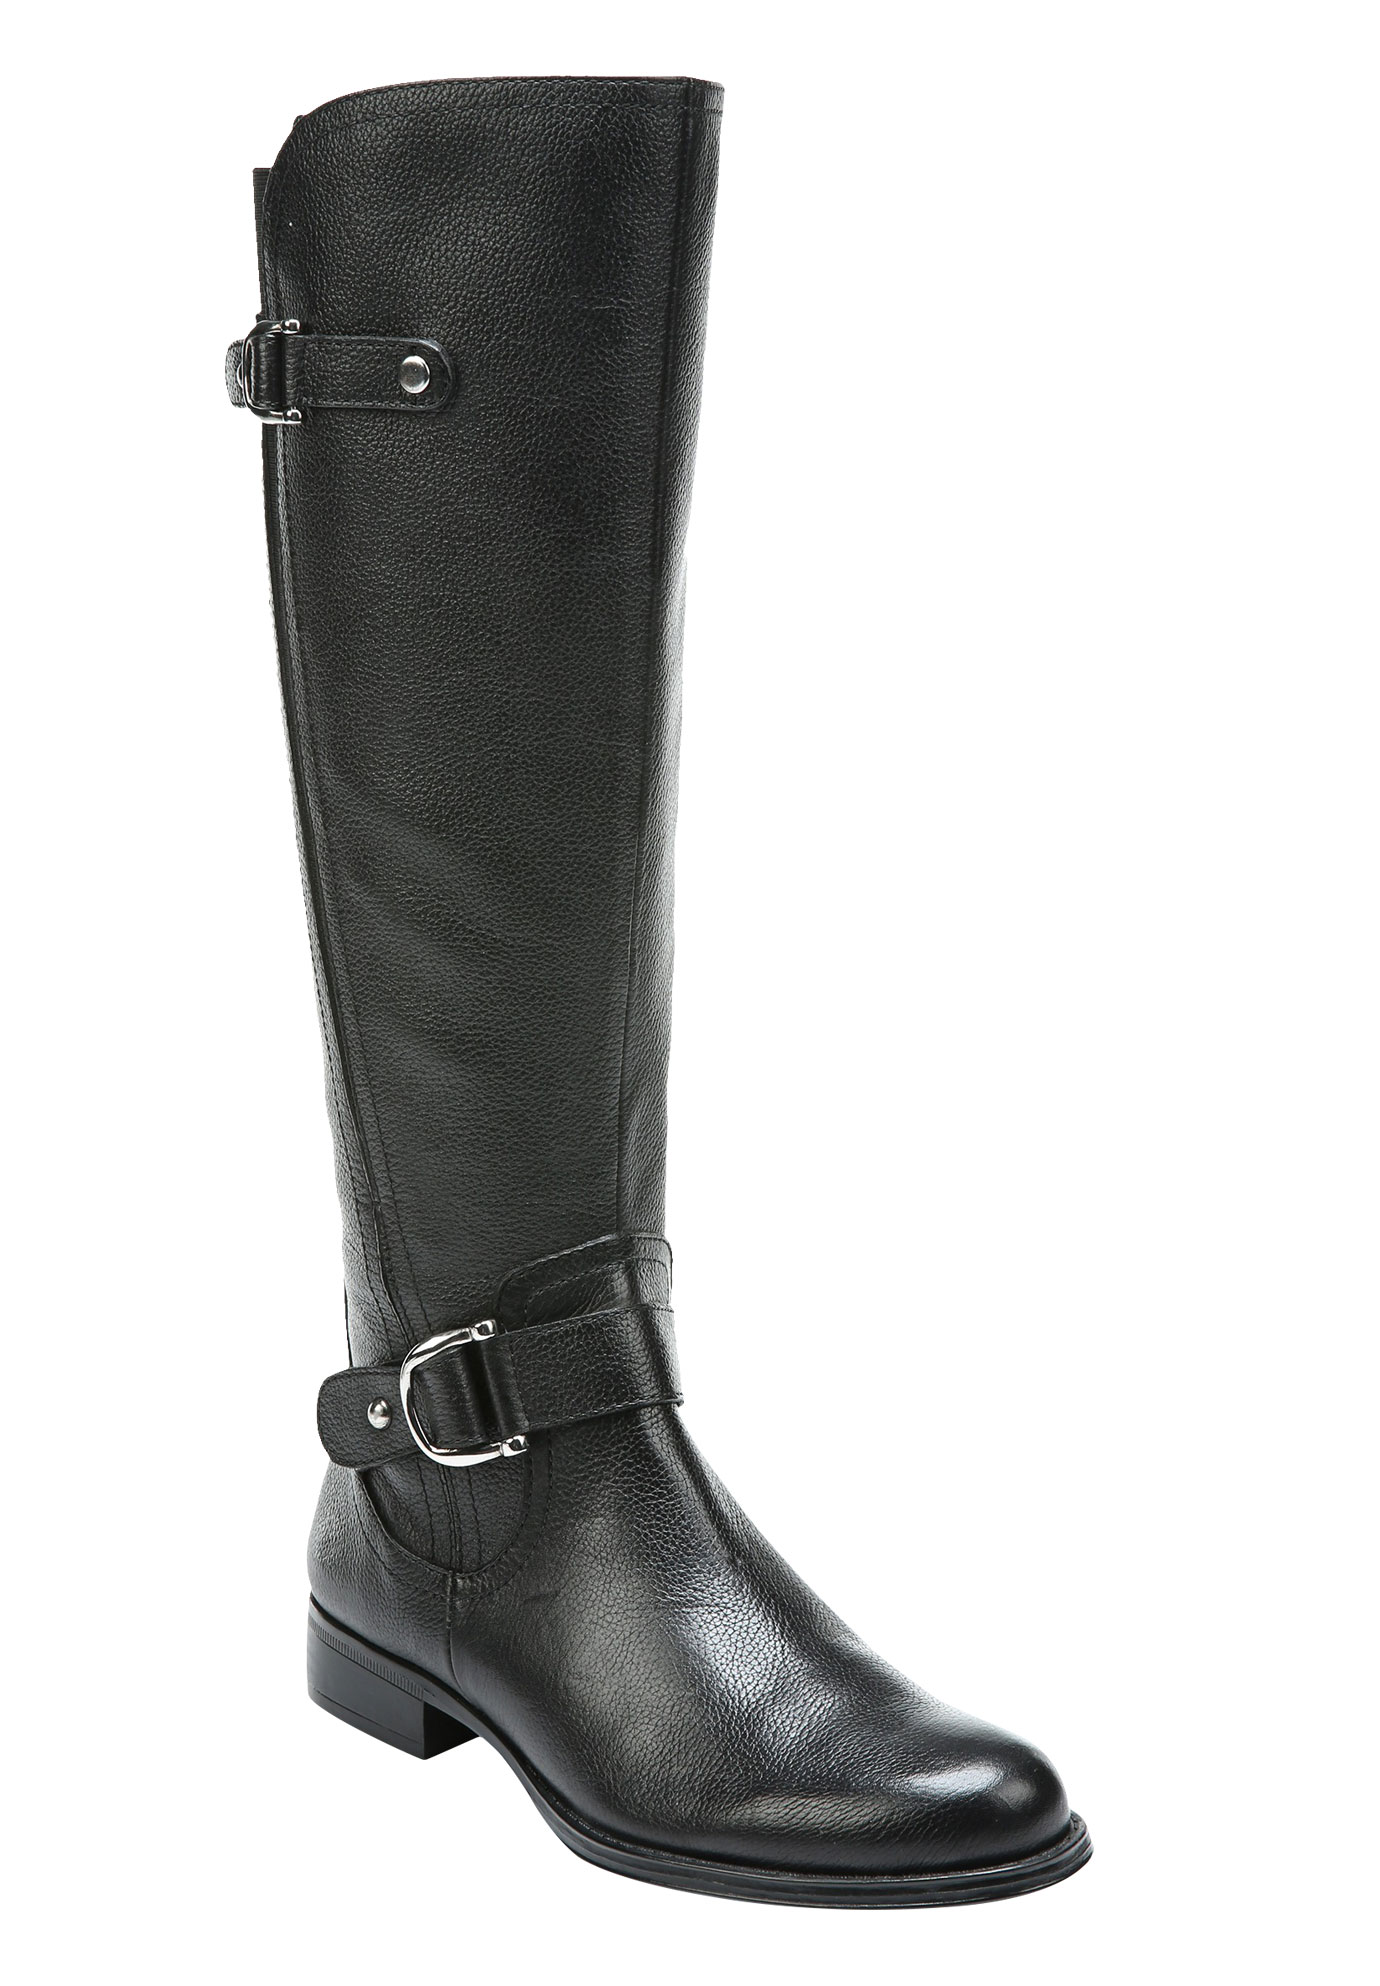 Jenelle Boots by Naturalizer®, BLACK, hi-res